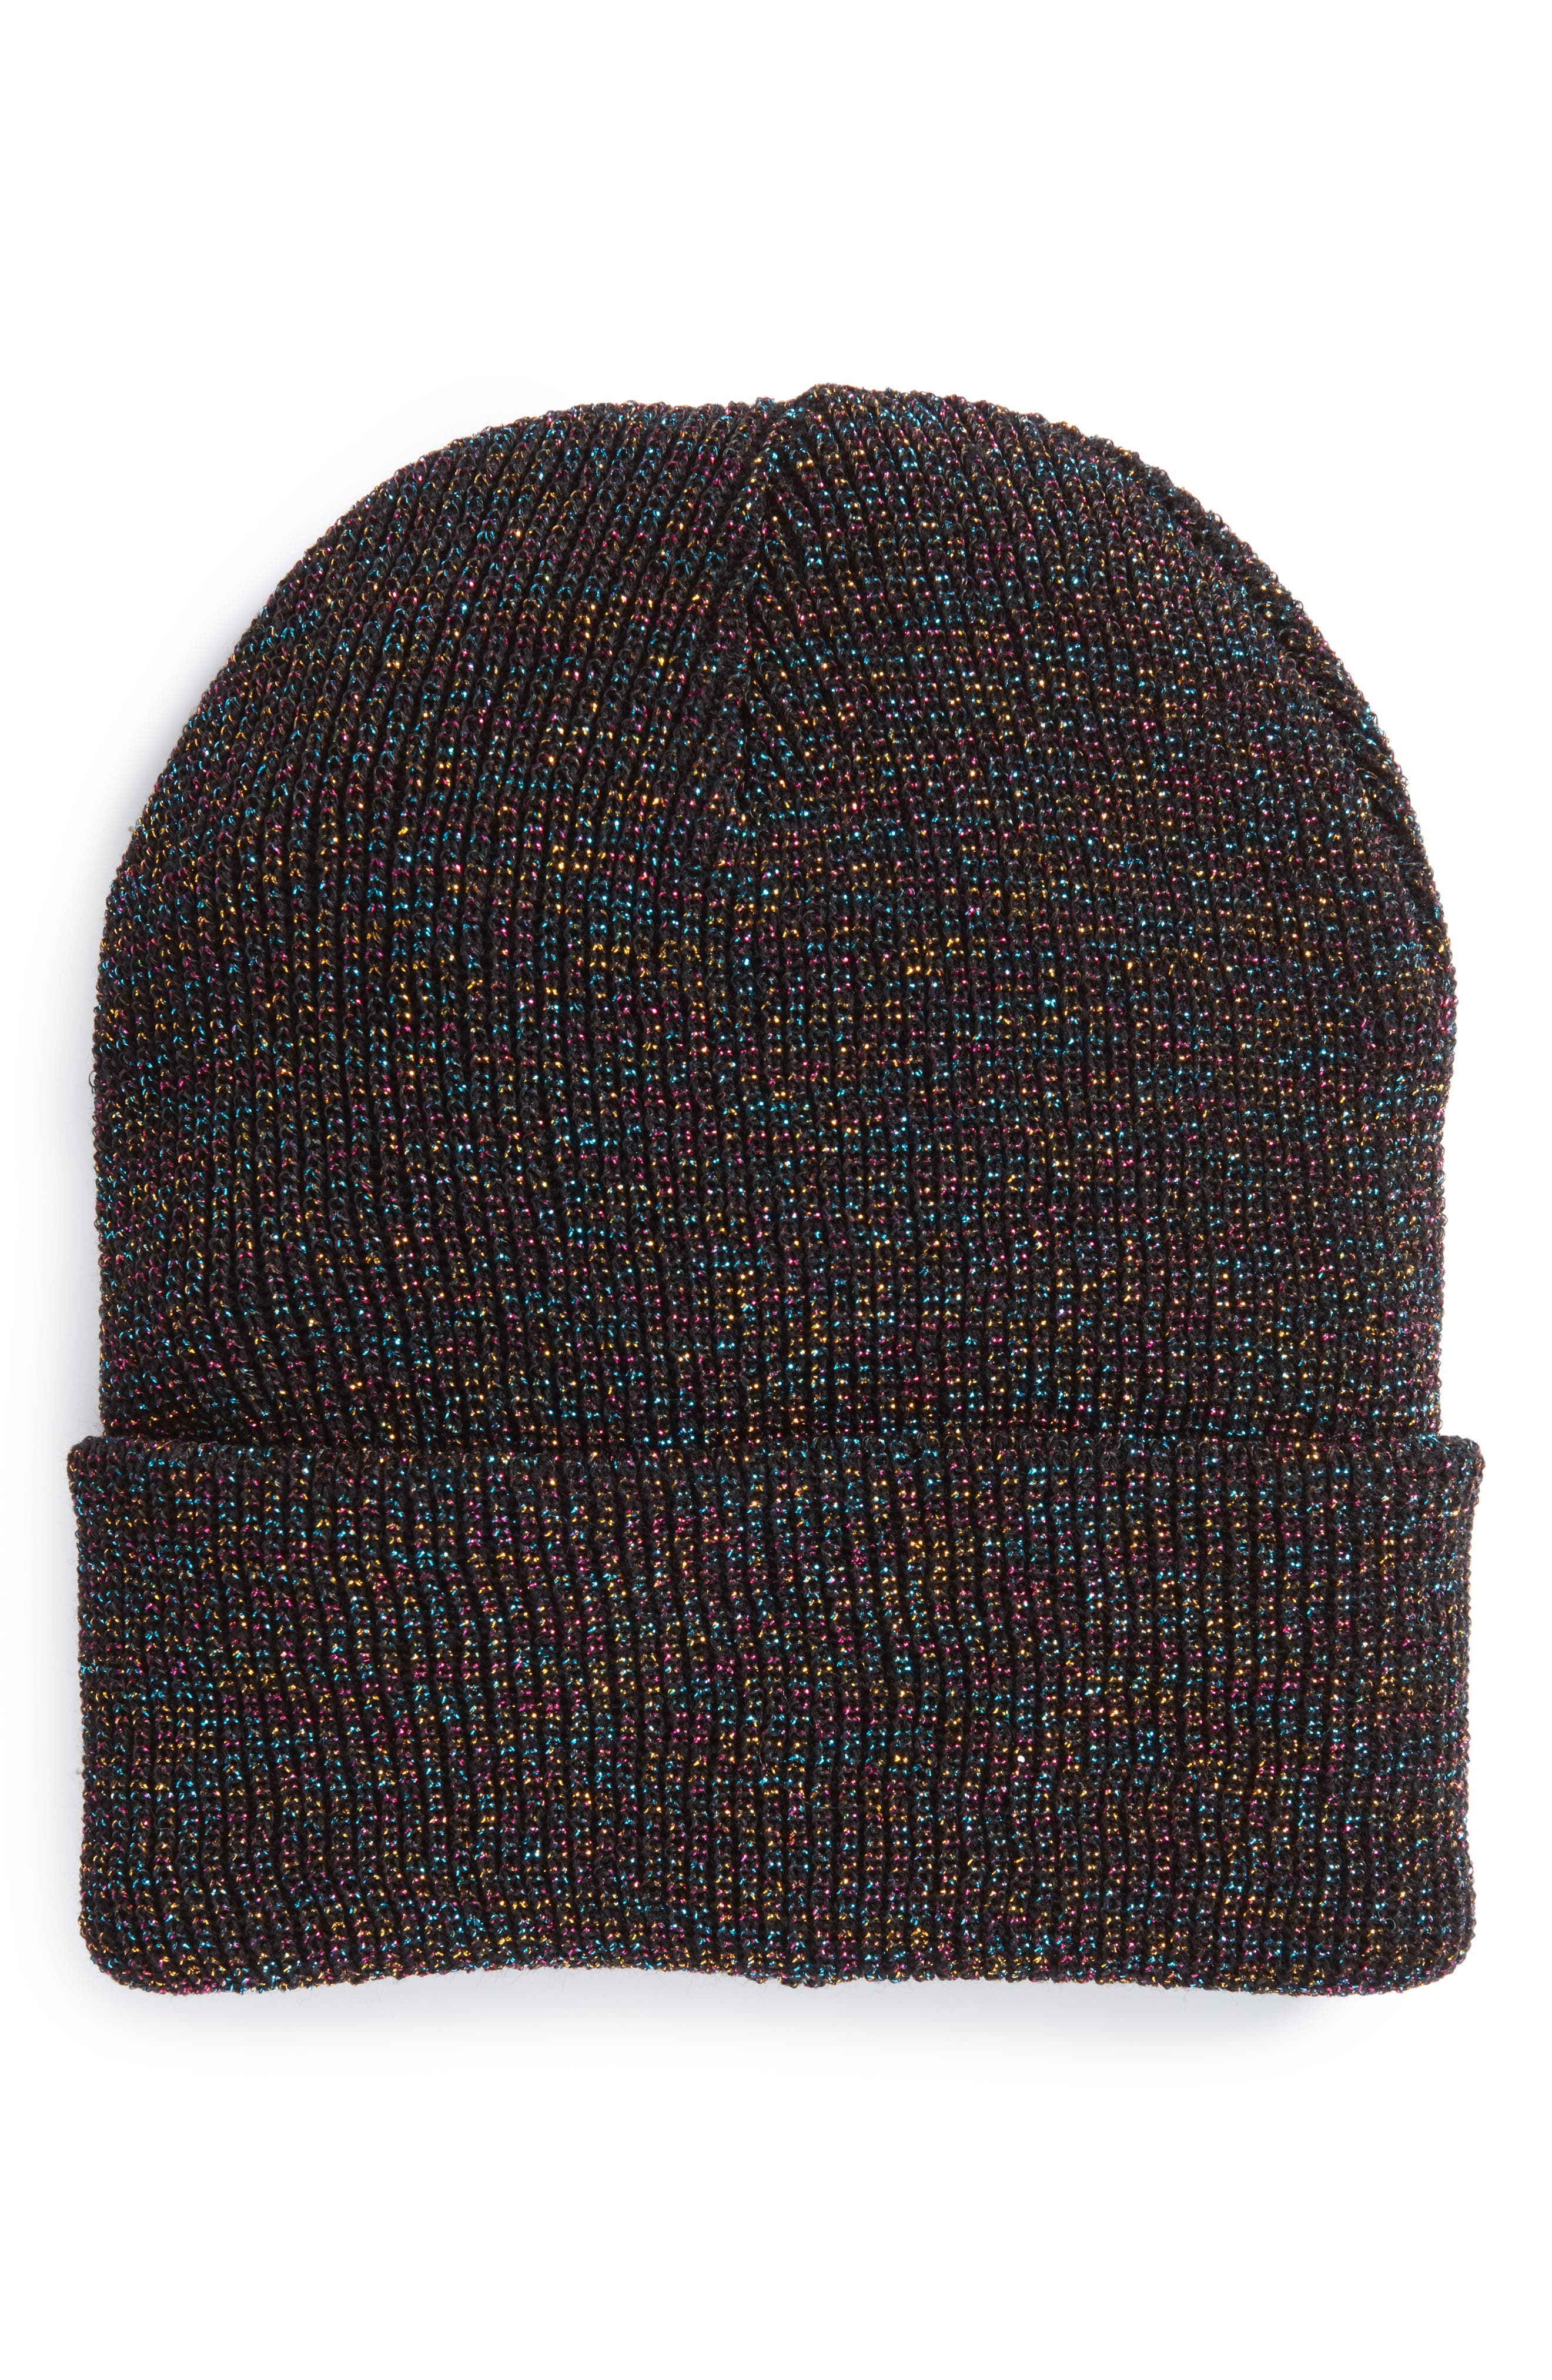 Metallic Slouchy Beanie,                         Main,                         color, Black Multi